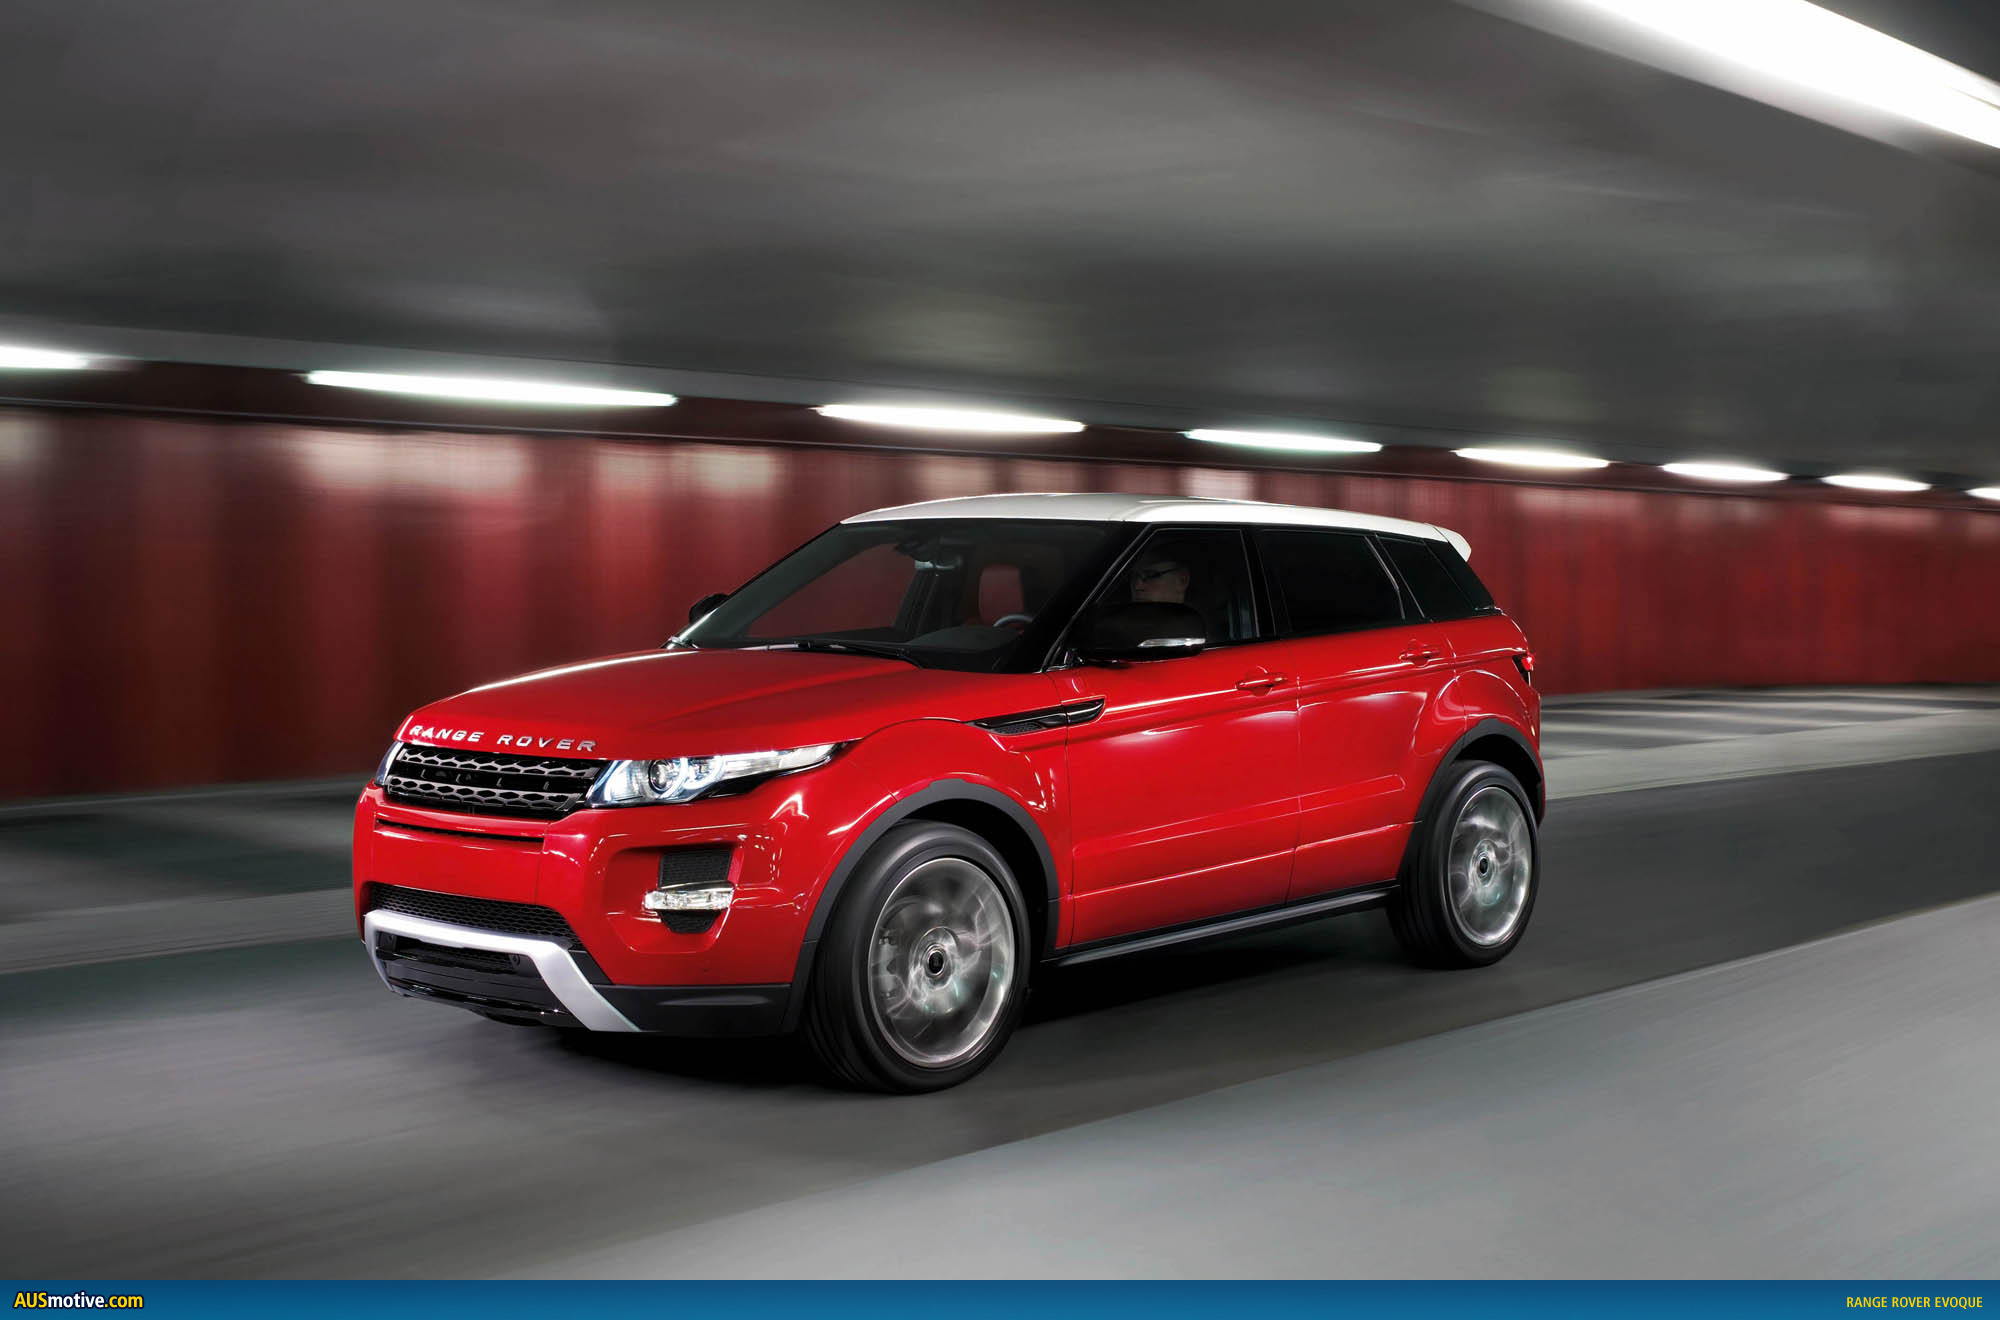 range rover evoque five door revealed. Black Bedroom Furniture Sets. Home Design Ideas